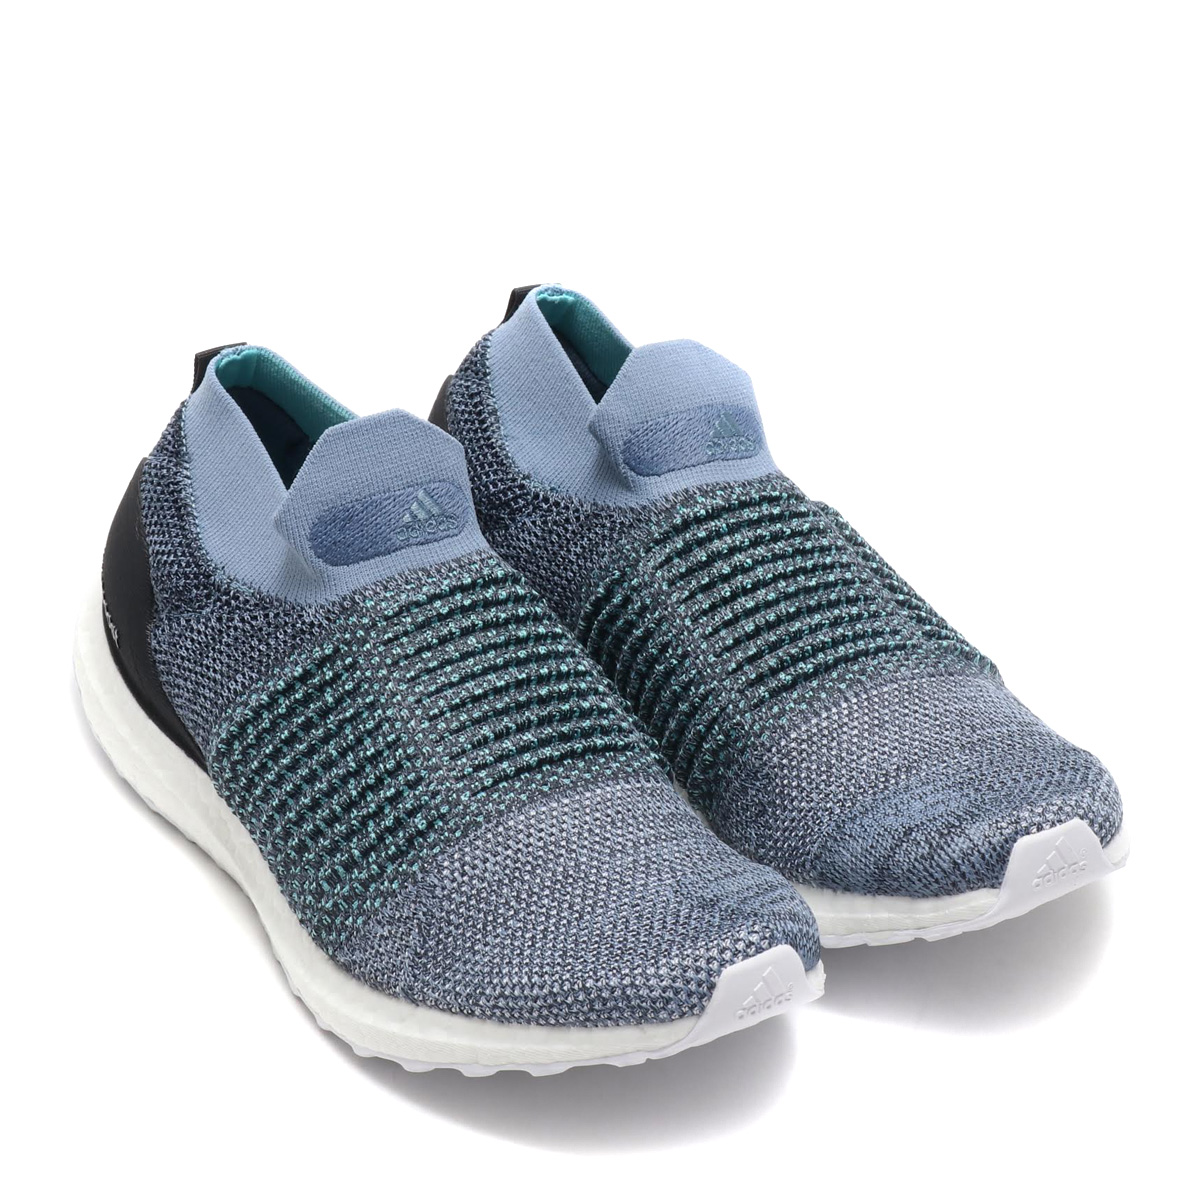 adidas UltraBOOST LACELESS Parley (アディダスウルトラブーストレースレスパーレー) RAW GREY CARBON BLUE SPIRIT 18FW I